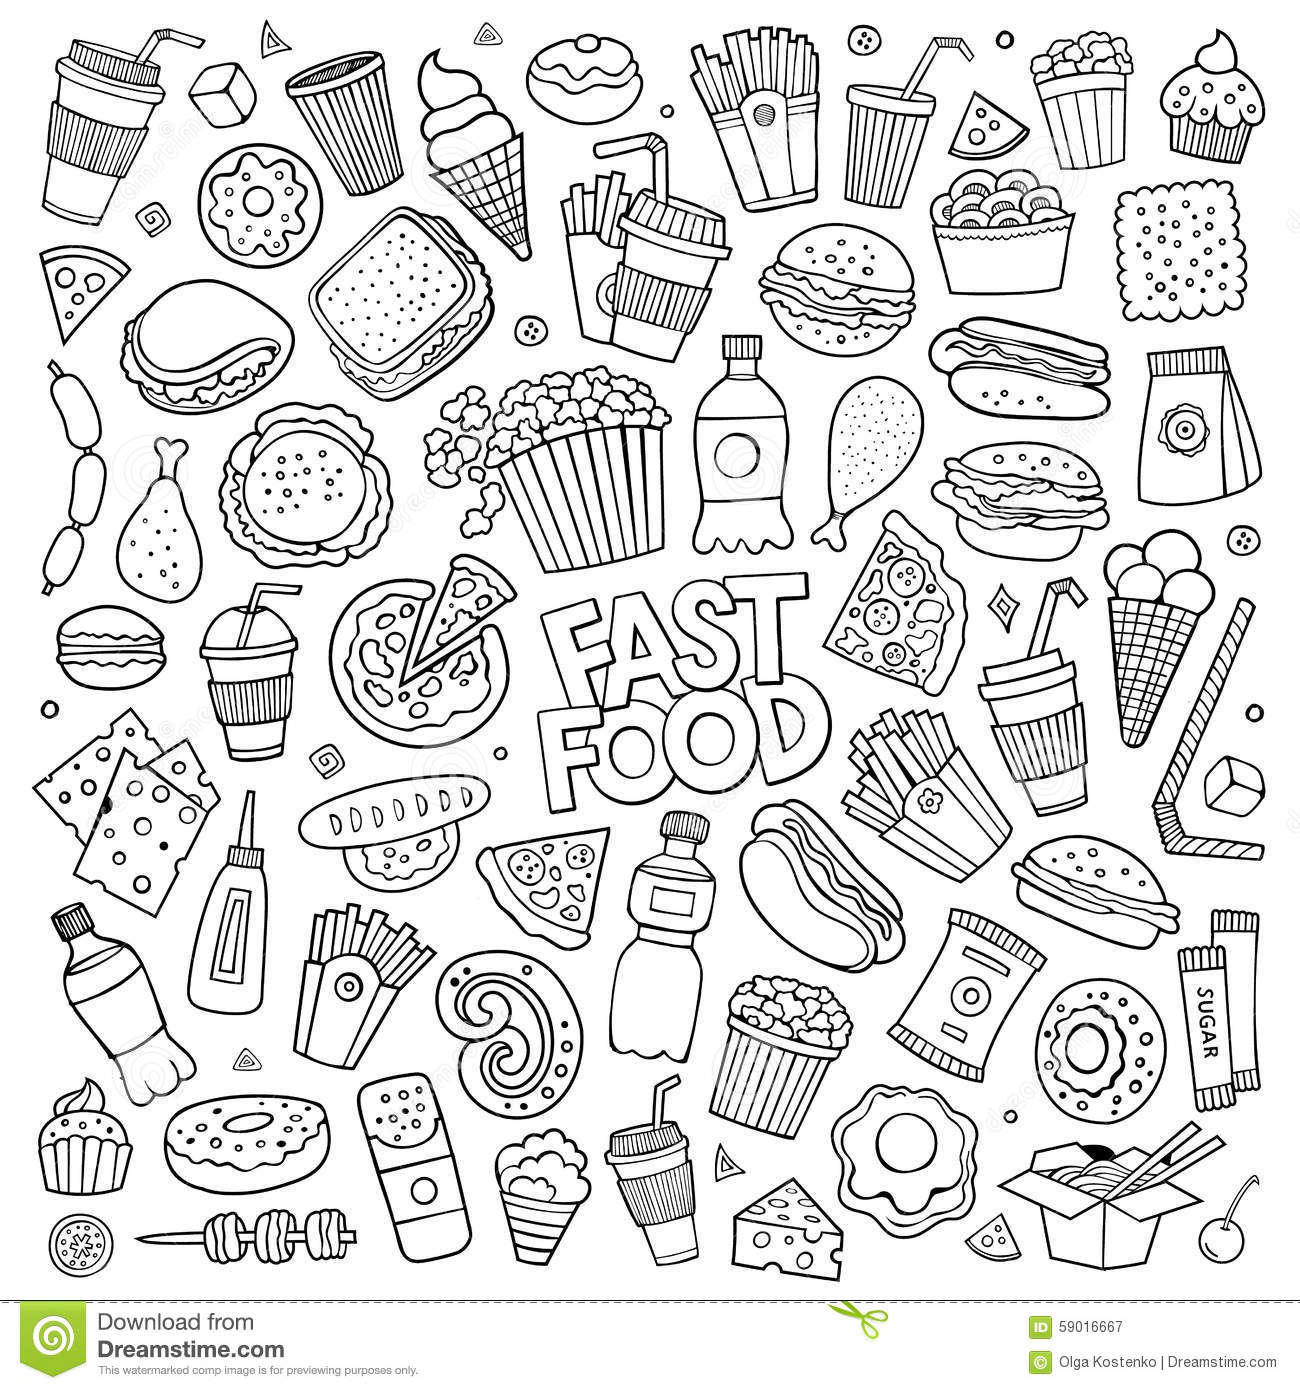 food themed coloring pages sweet drawing stock images royalty free images vectors themed food coloring pages